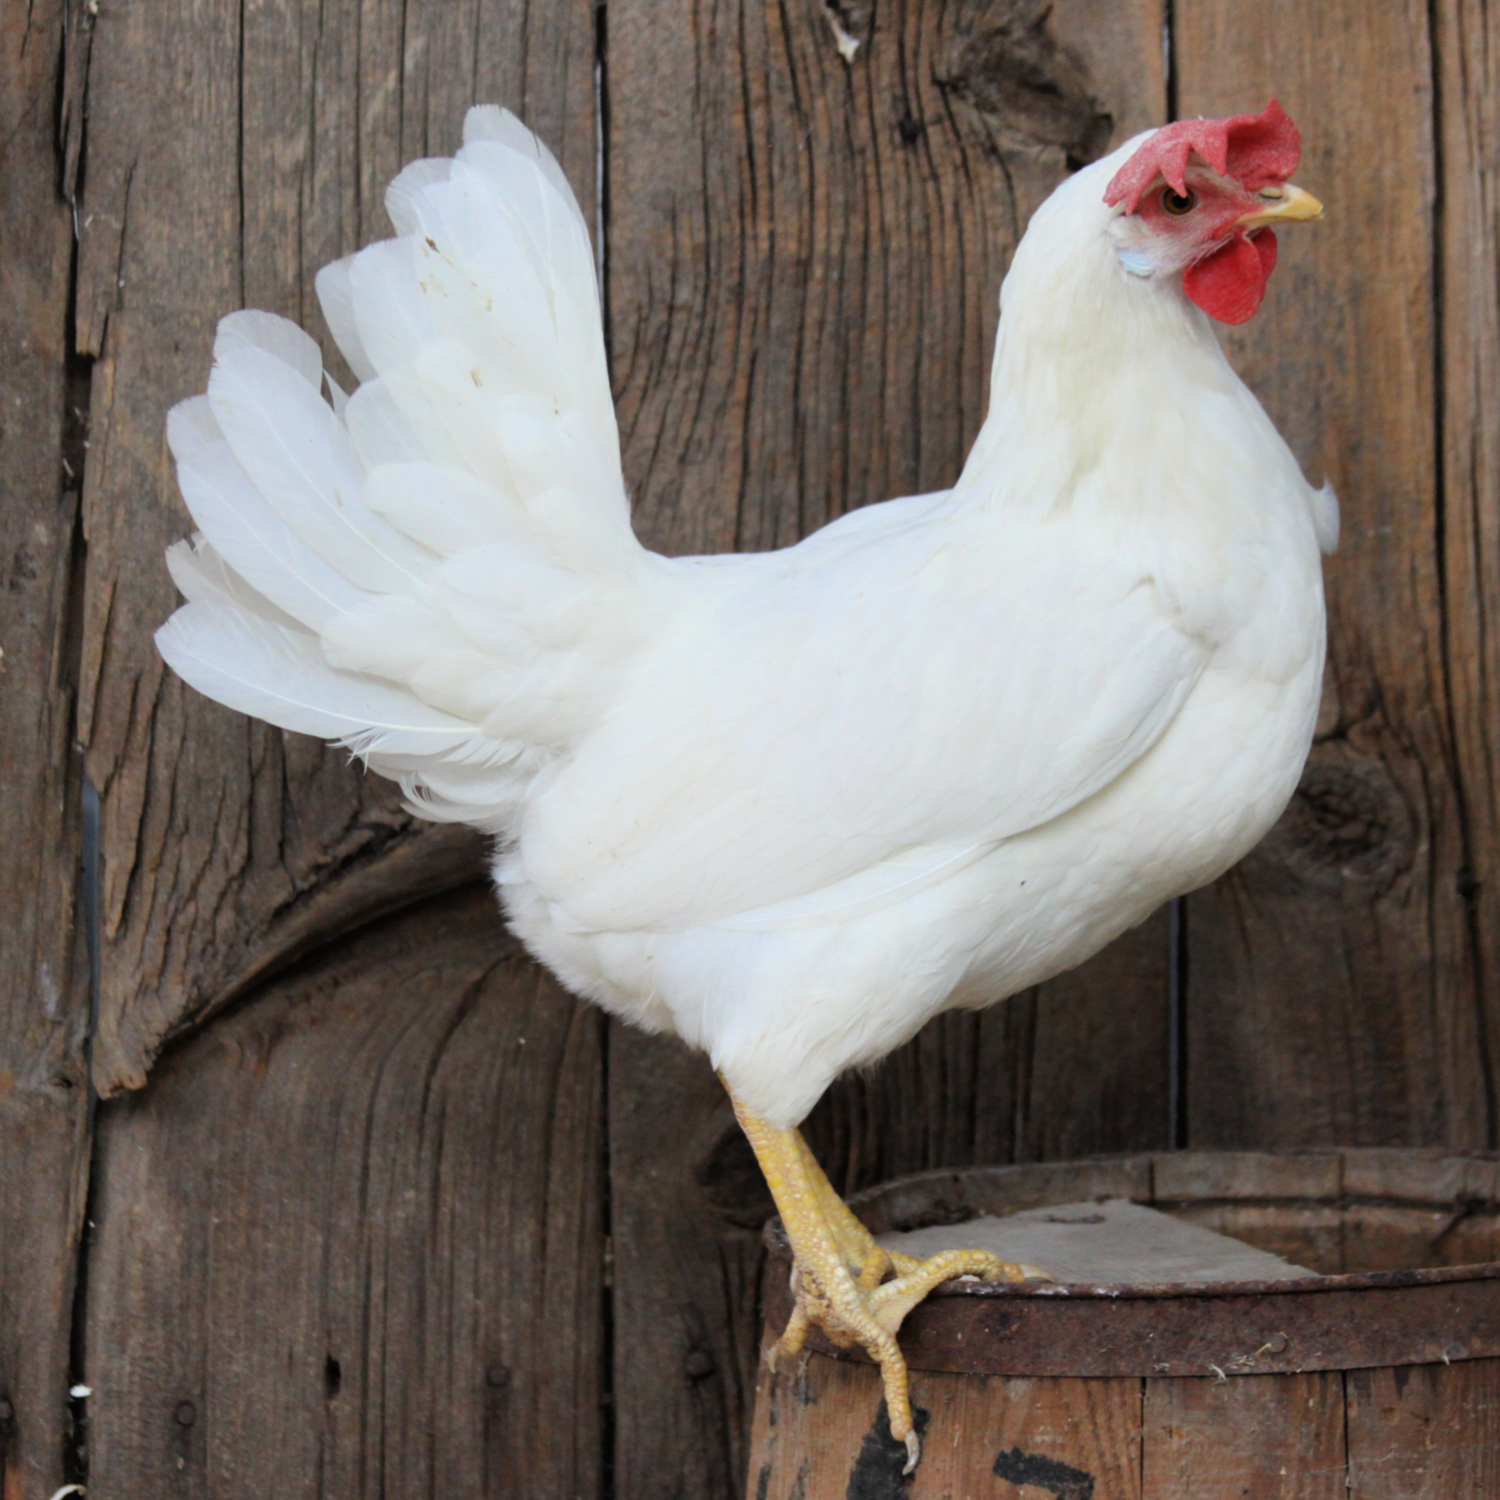 White Leghorn Day Old Chicks - Free Shipping